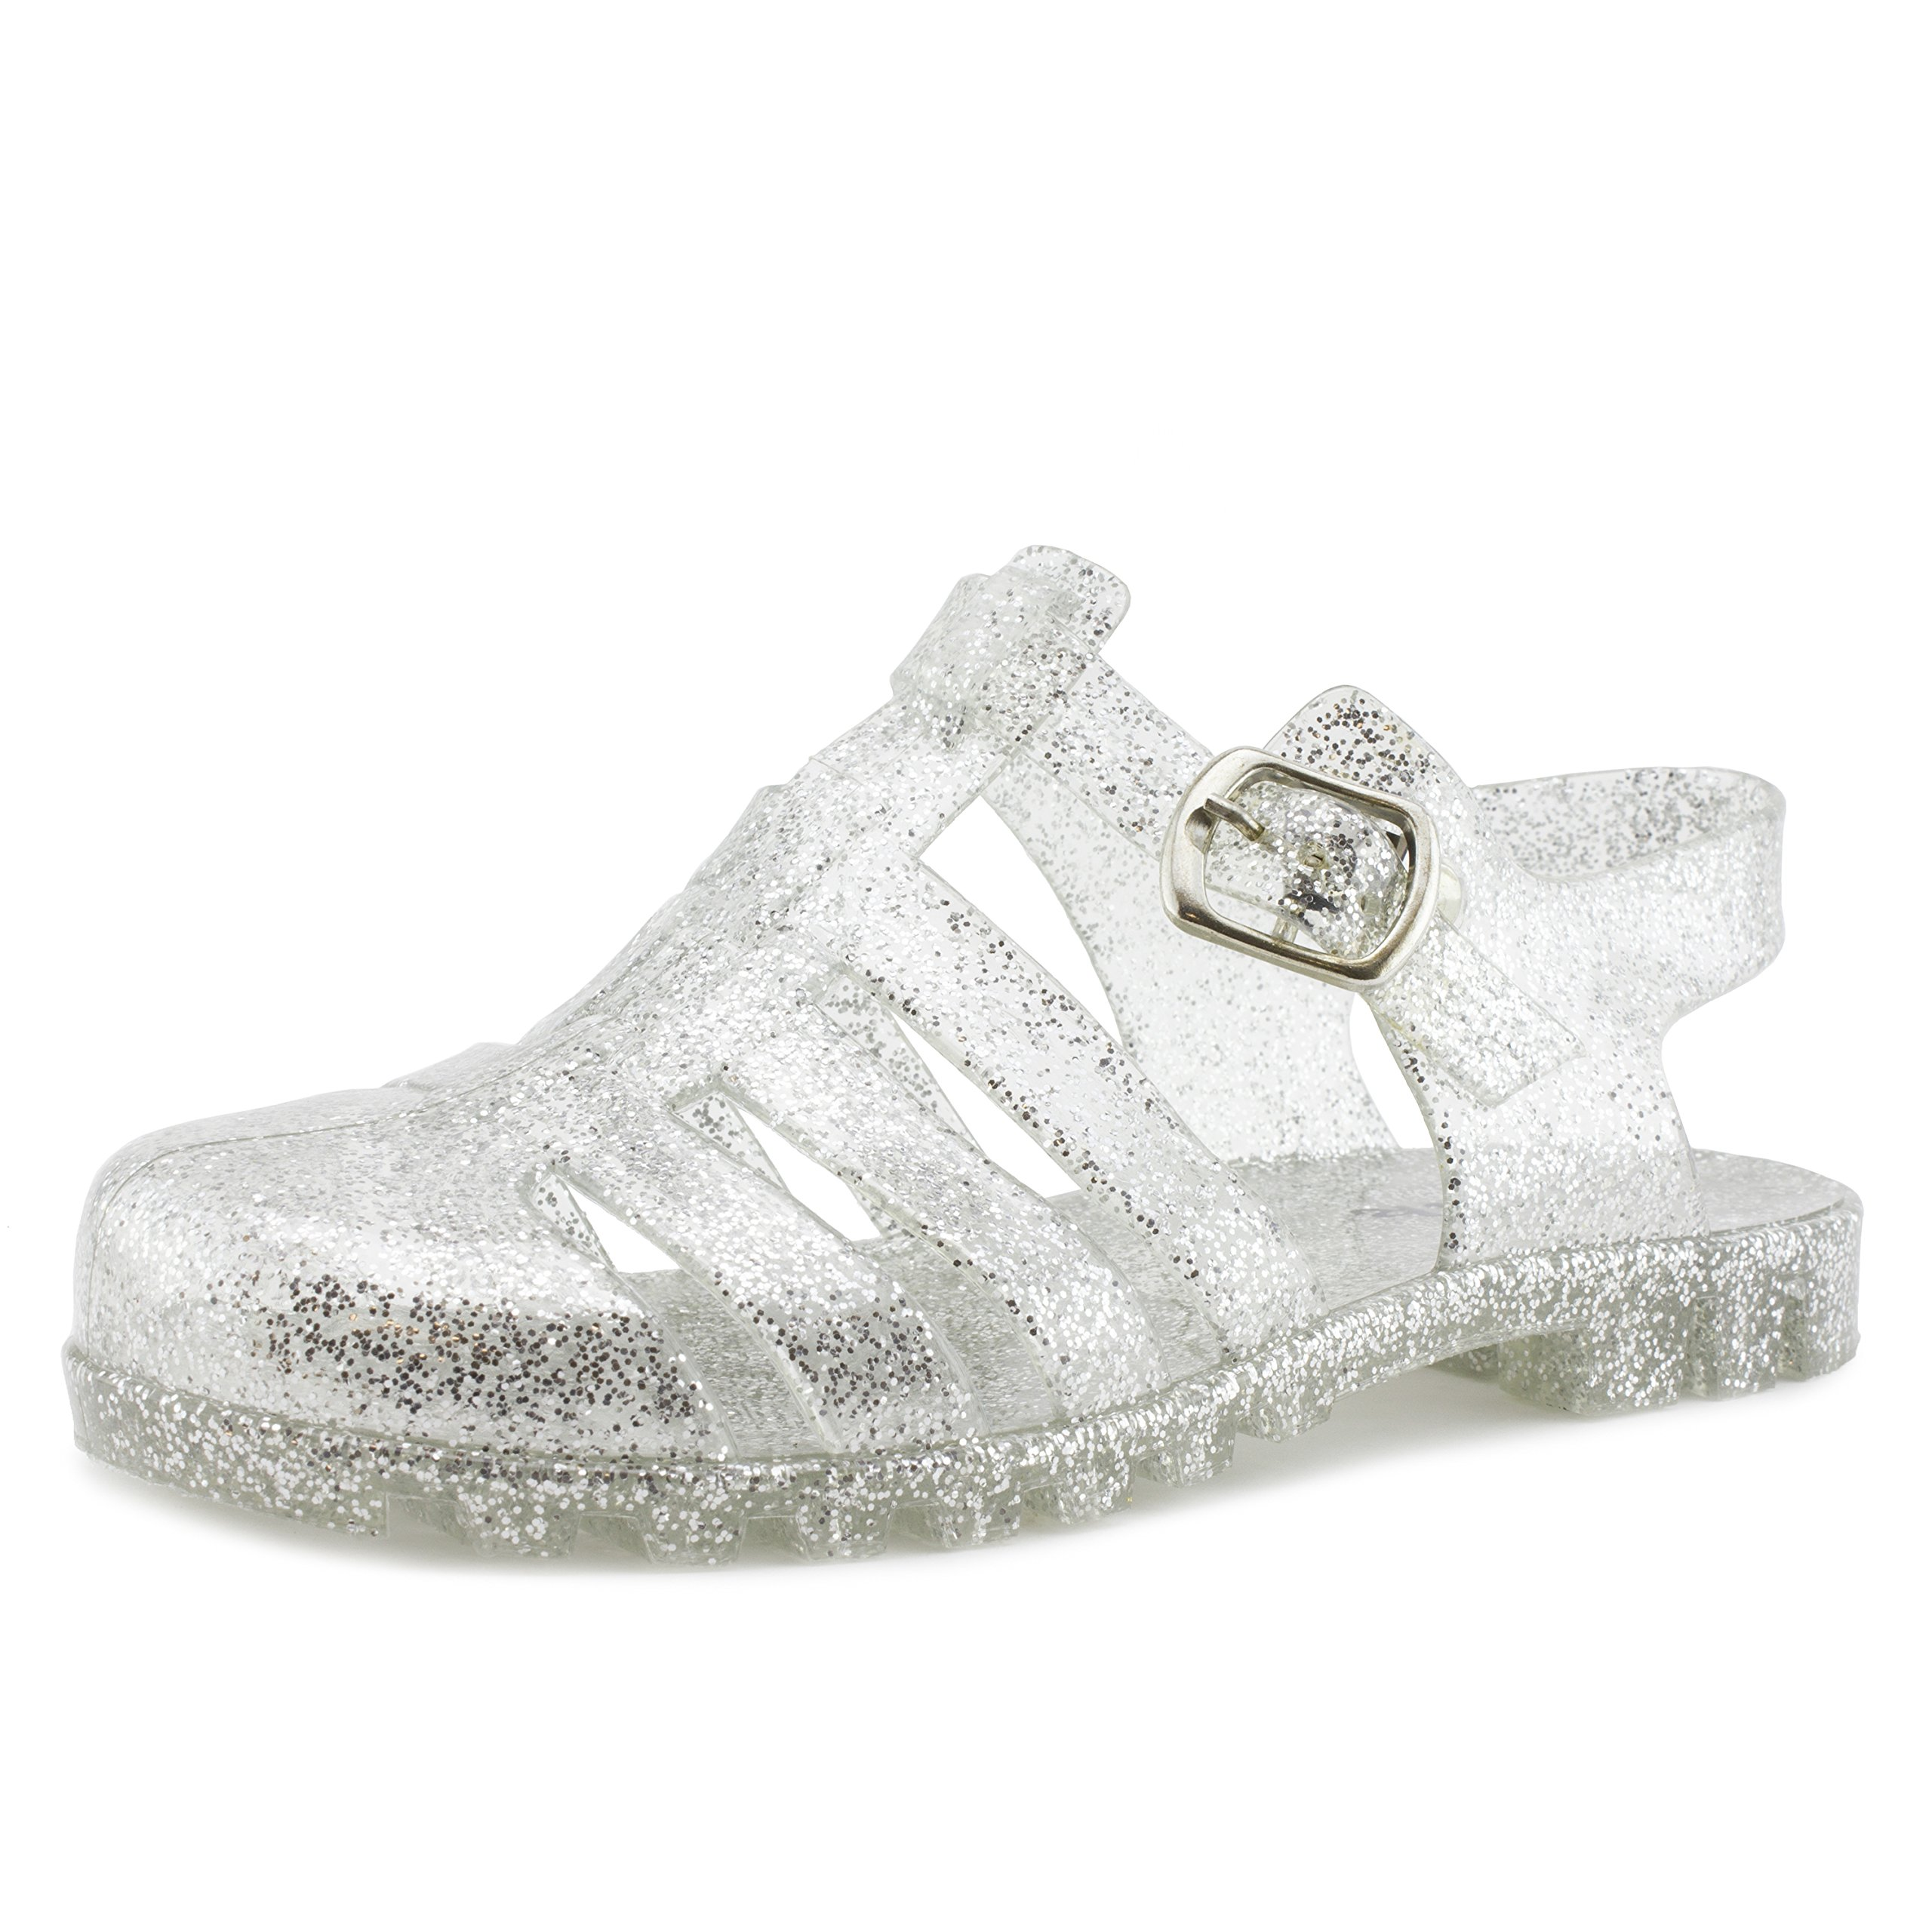 Link Girls Retro Jelly Buckle Closure Gladiator Sandals Clear III 12 M US Little Kid